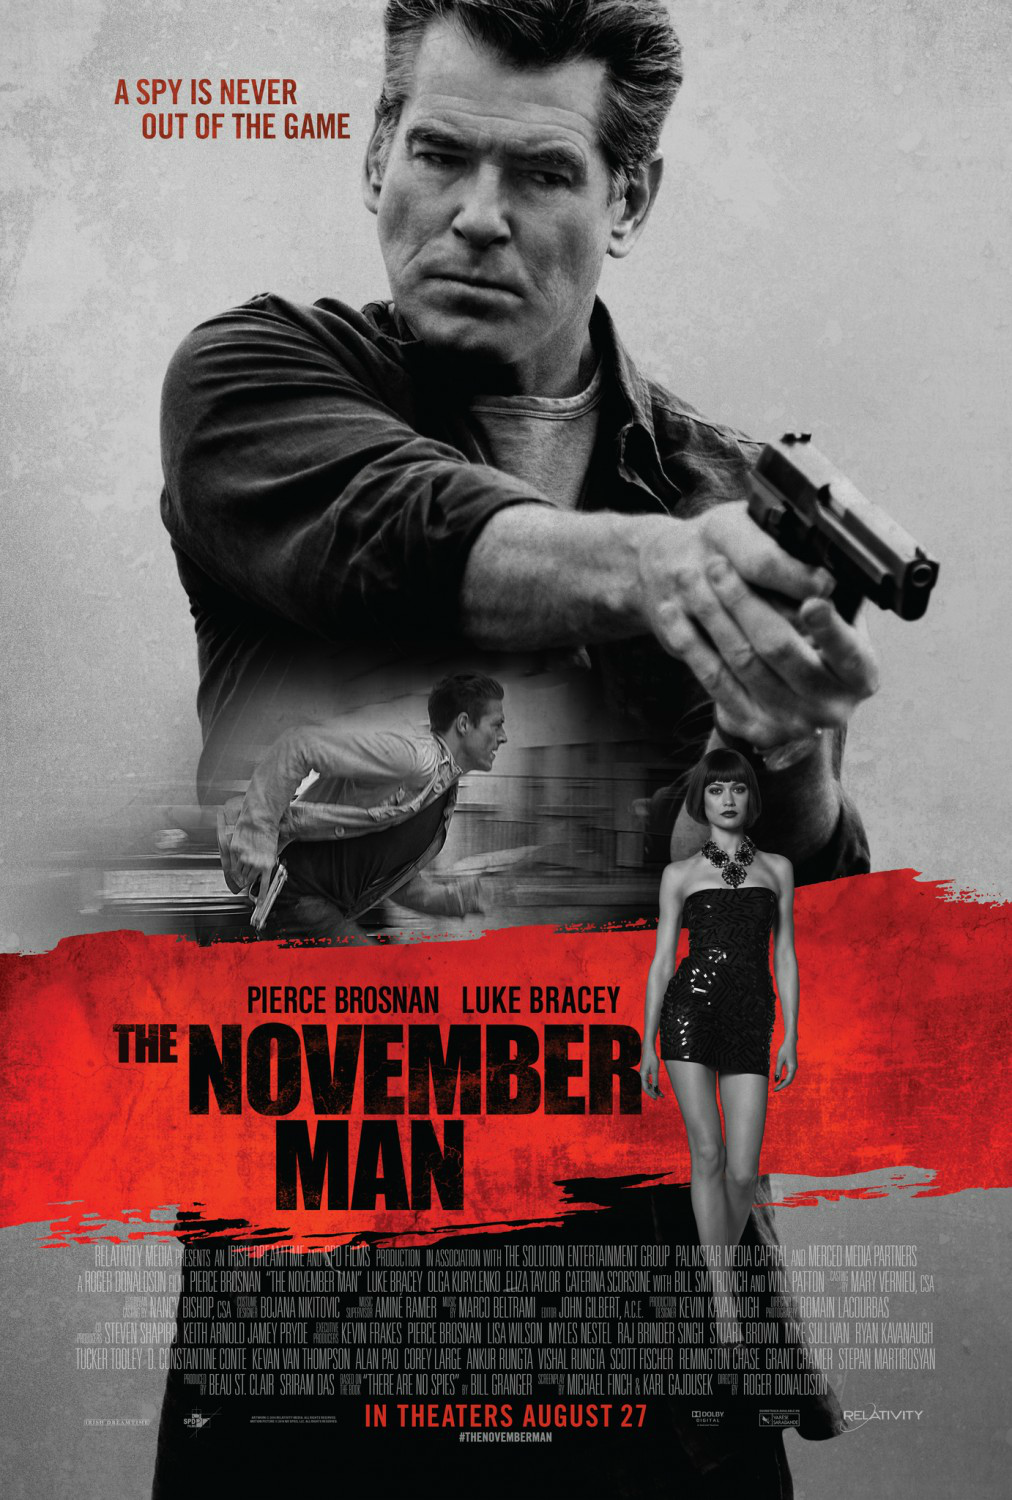 Labor Day 2014 movies sneak peek: Chef the Movie, The November Man and more!